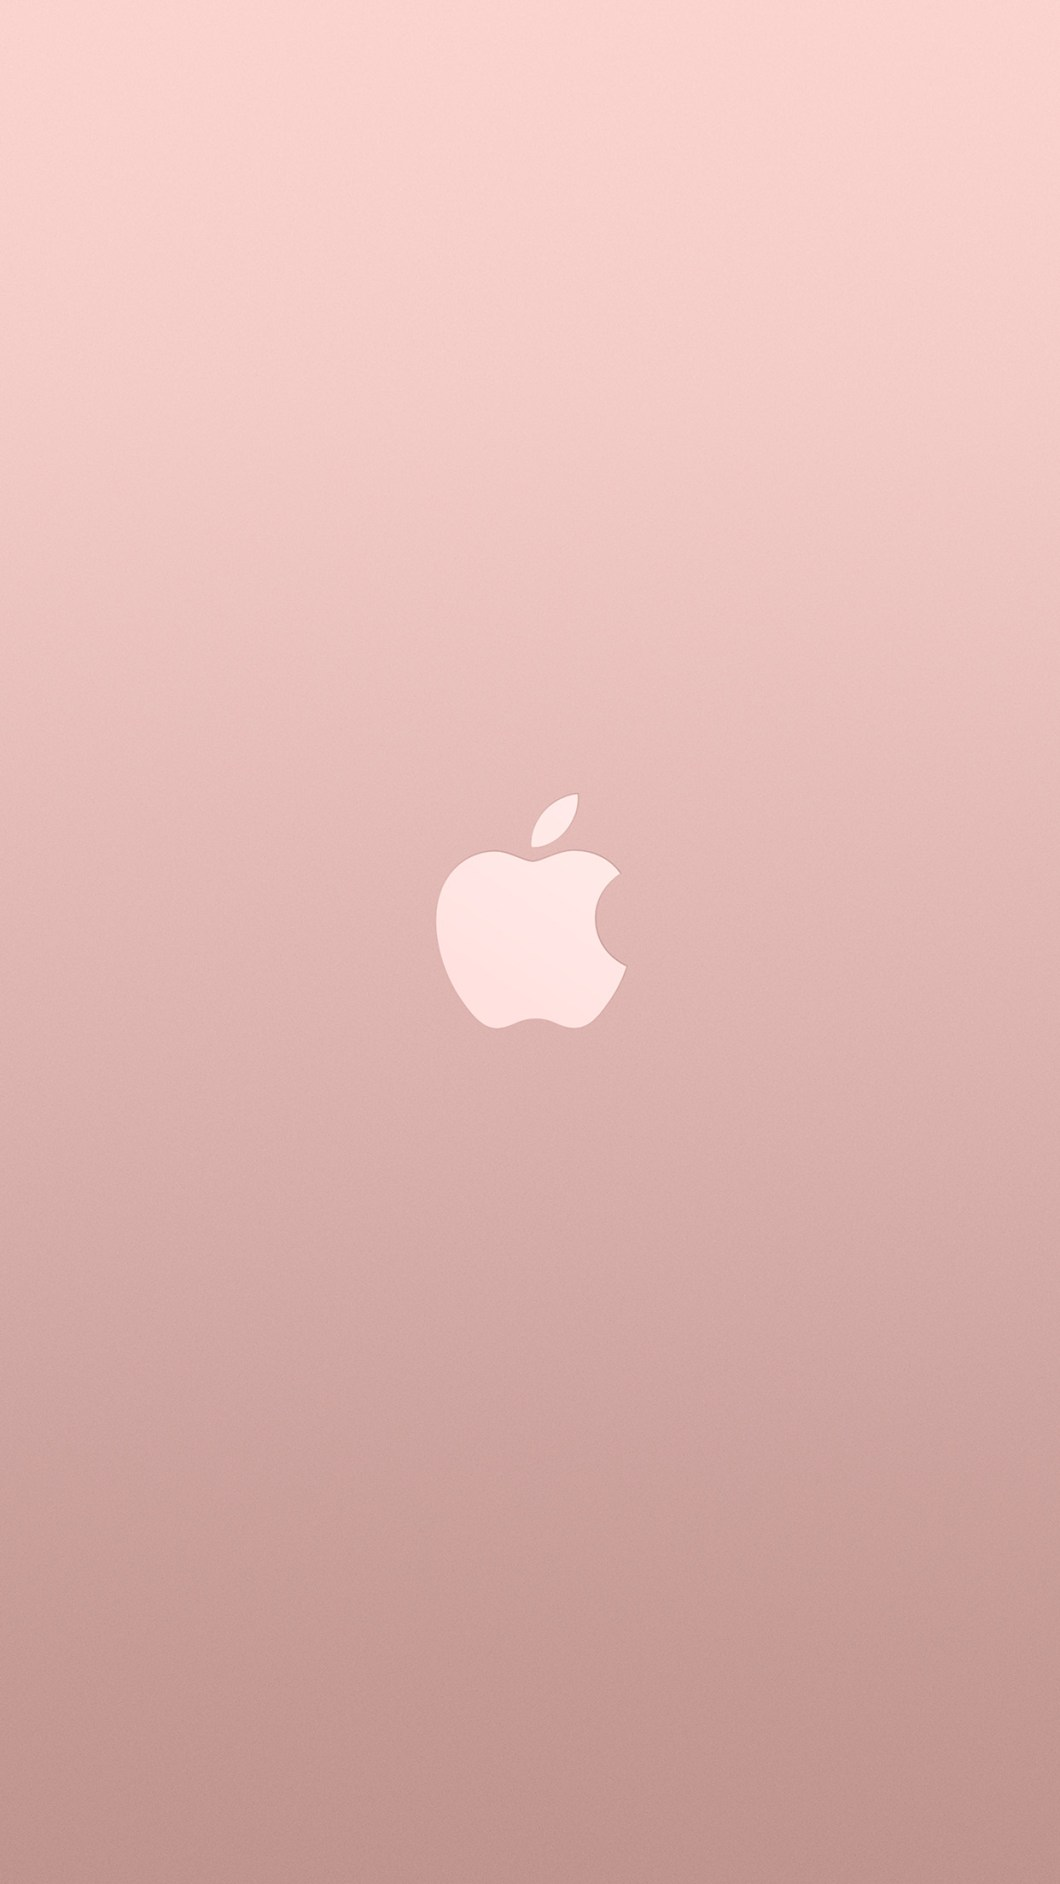 Hd Wallpapers For Iphone 7 Rose Gold Walljdi Org